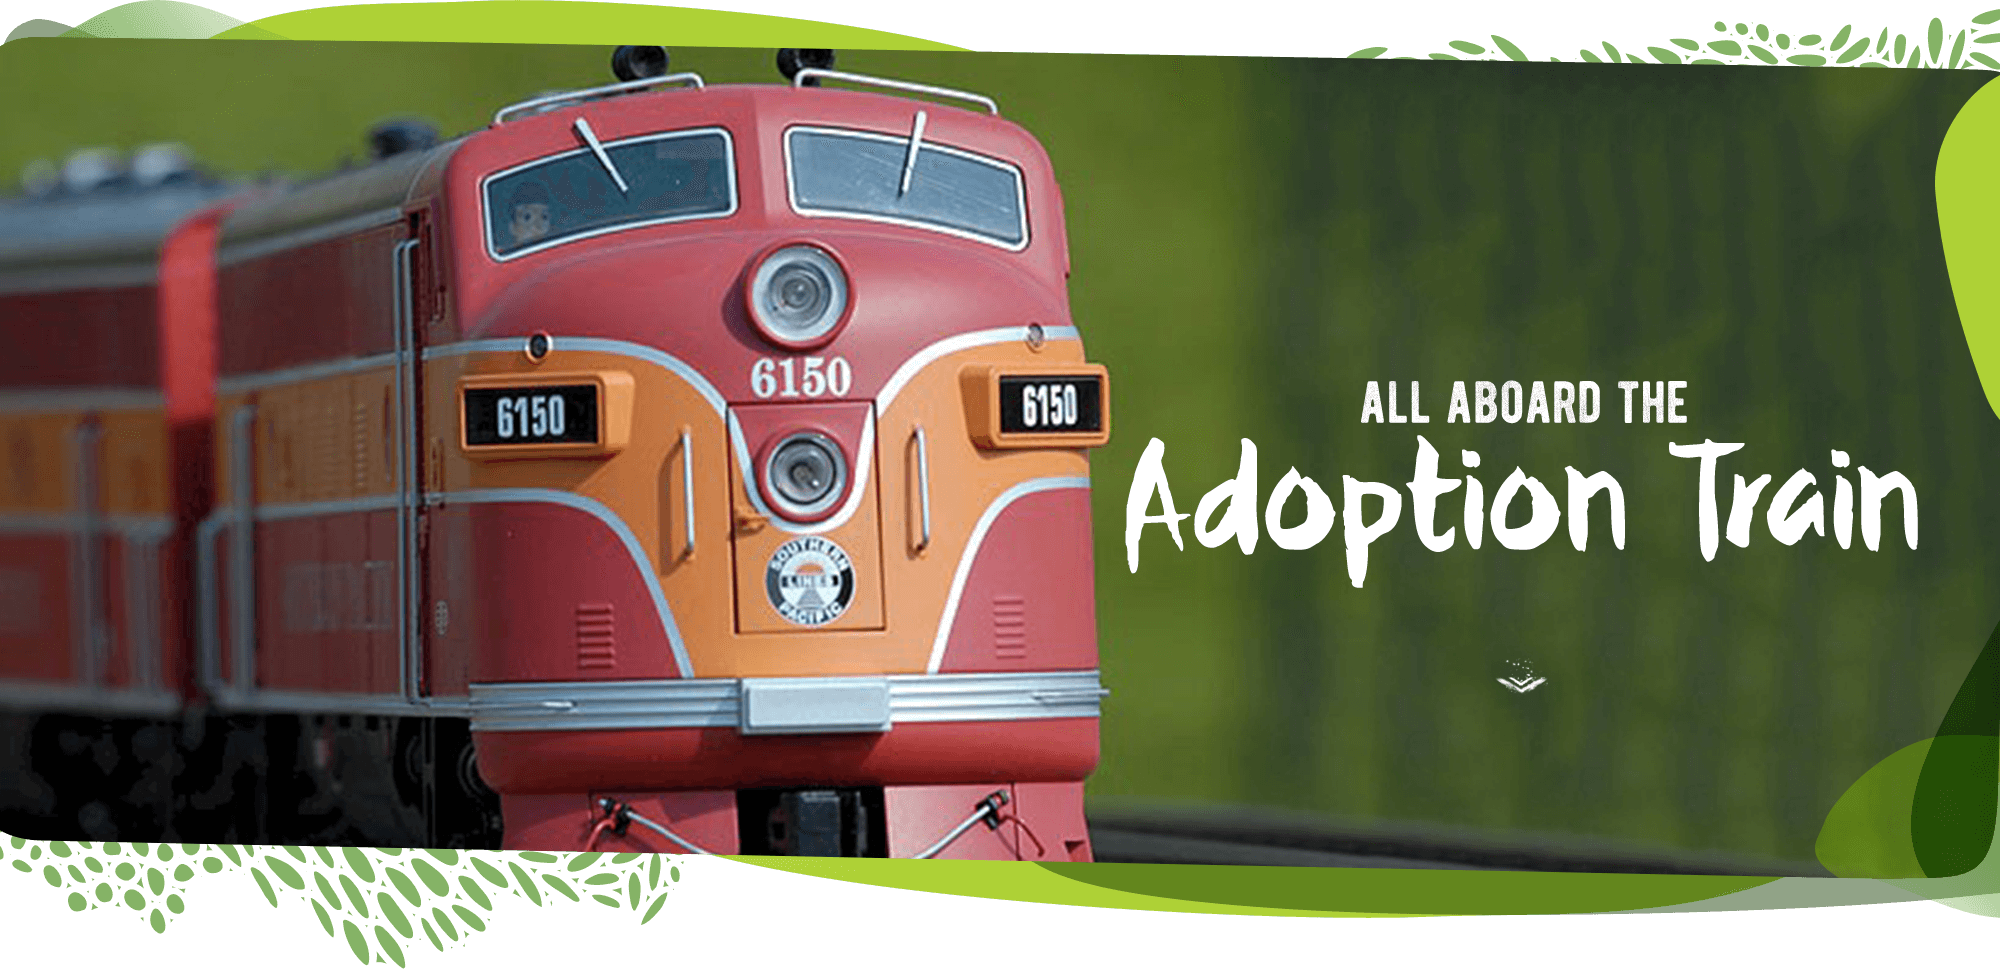 All Aboard the Adoption Train